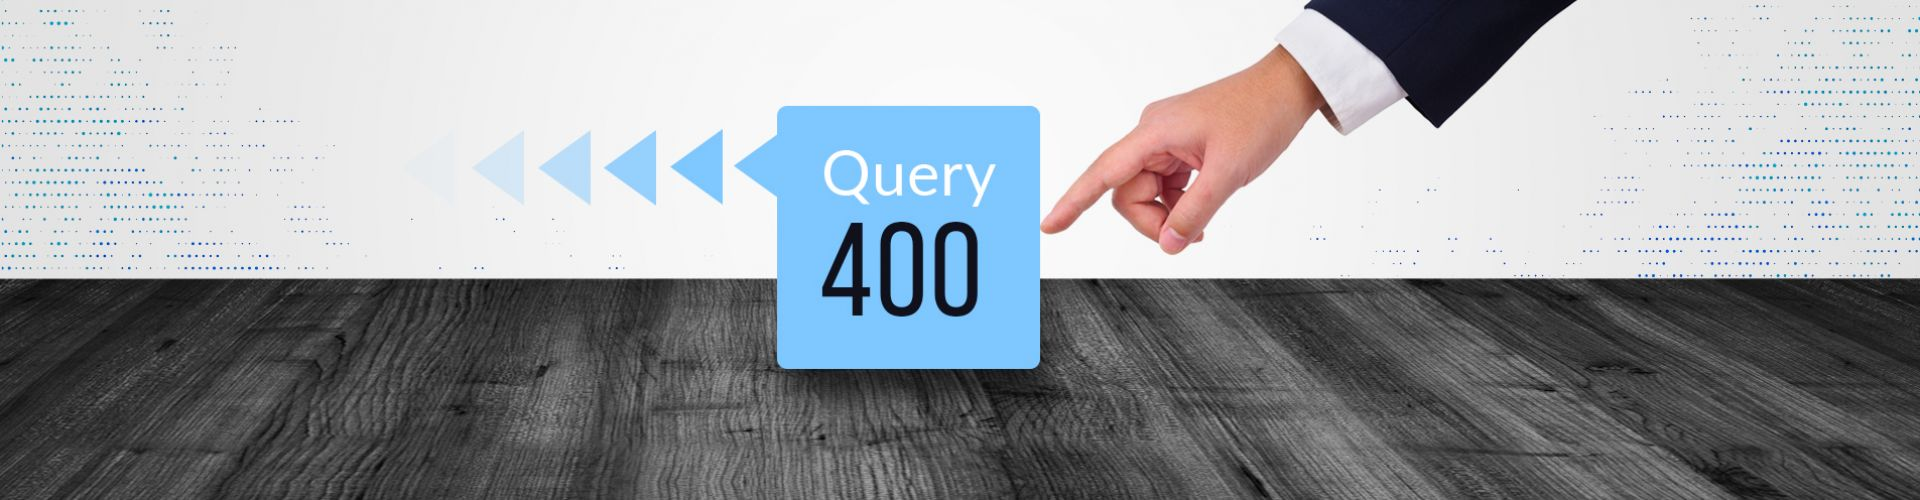 Finger pushing Query400 out